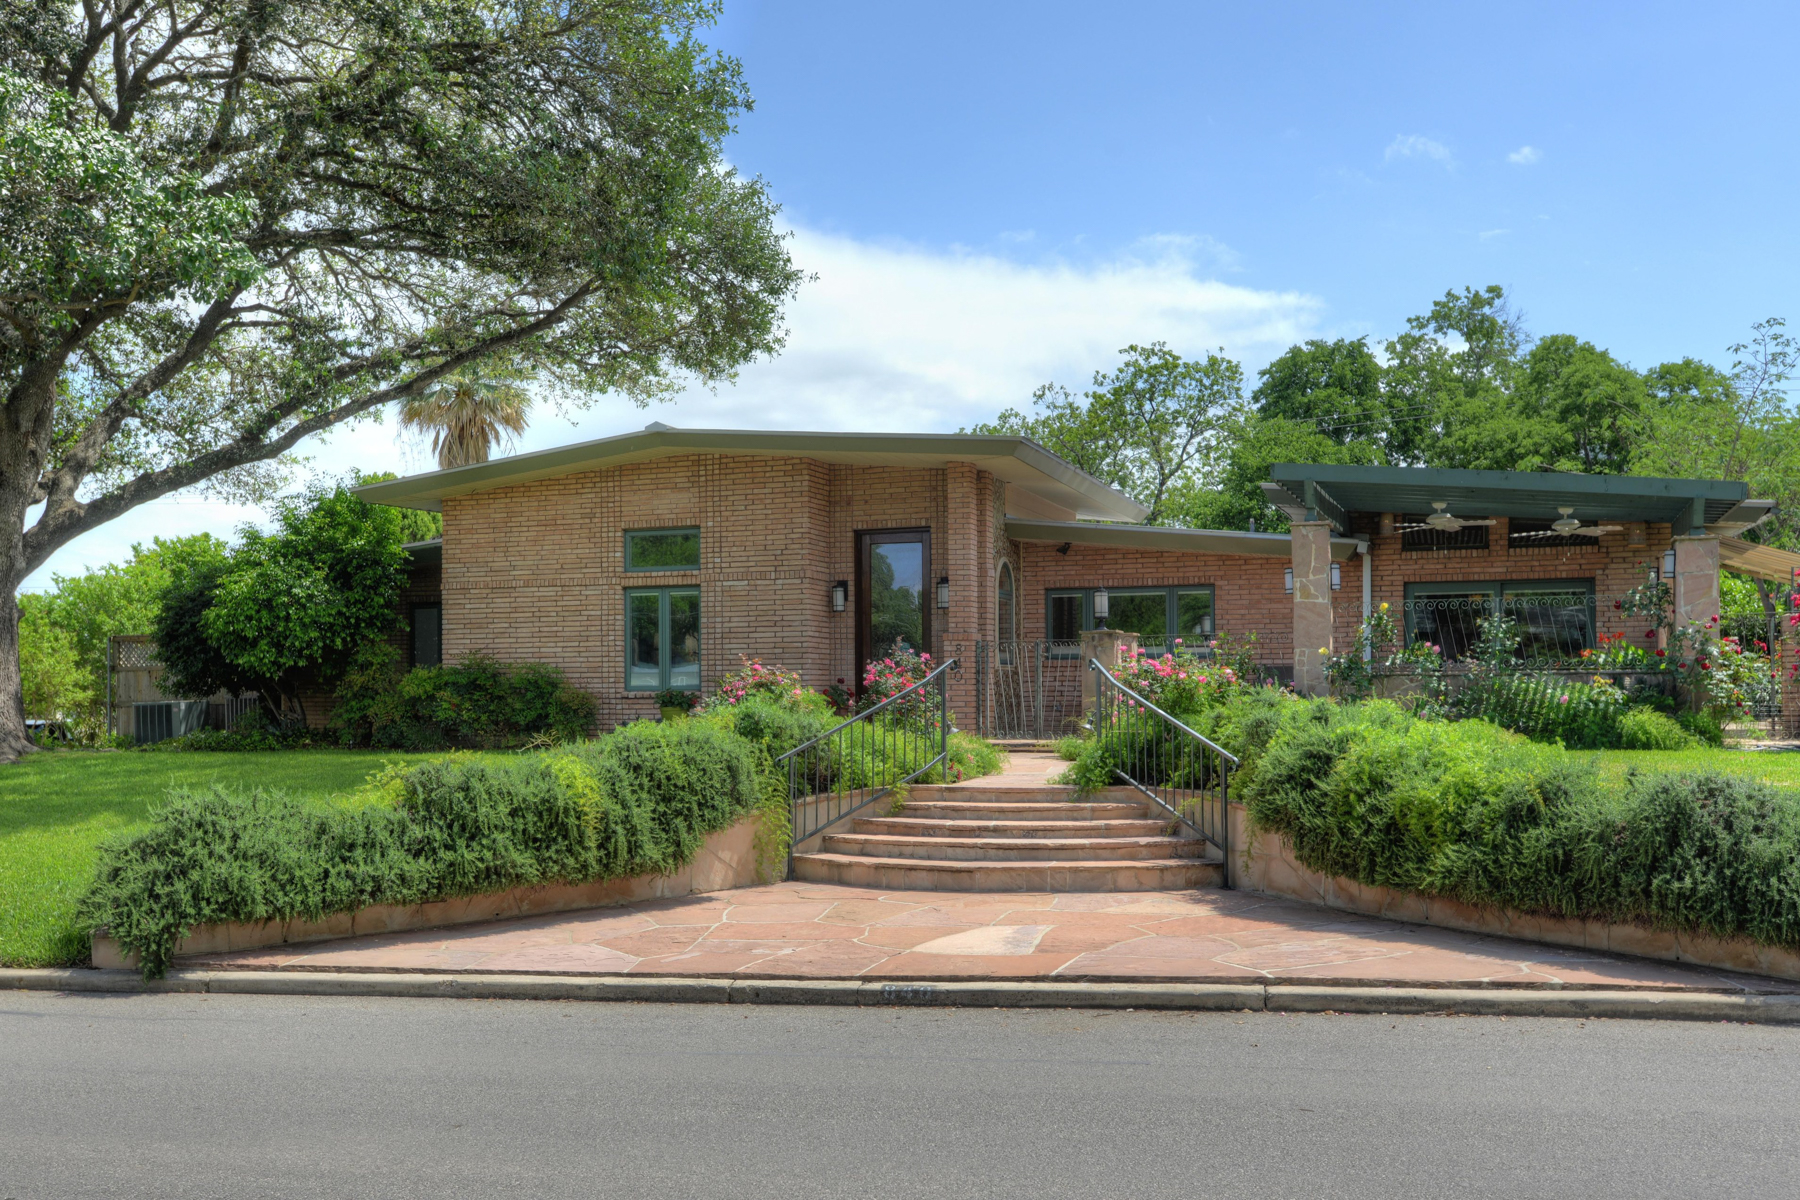 Single Family Home for Sale at Custom Home in Terrell Hills 840 Canterbury Hill San Antonio, Texas 78209 United States